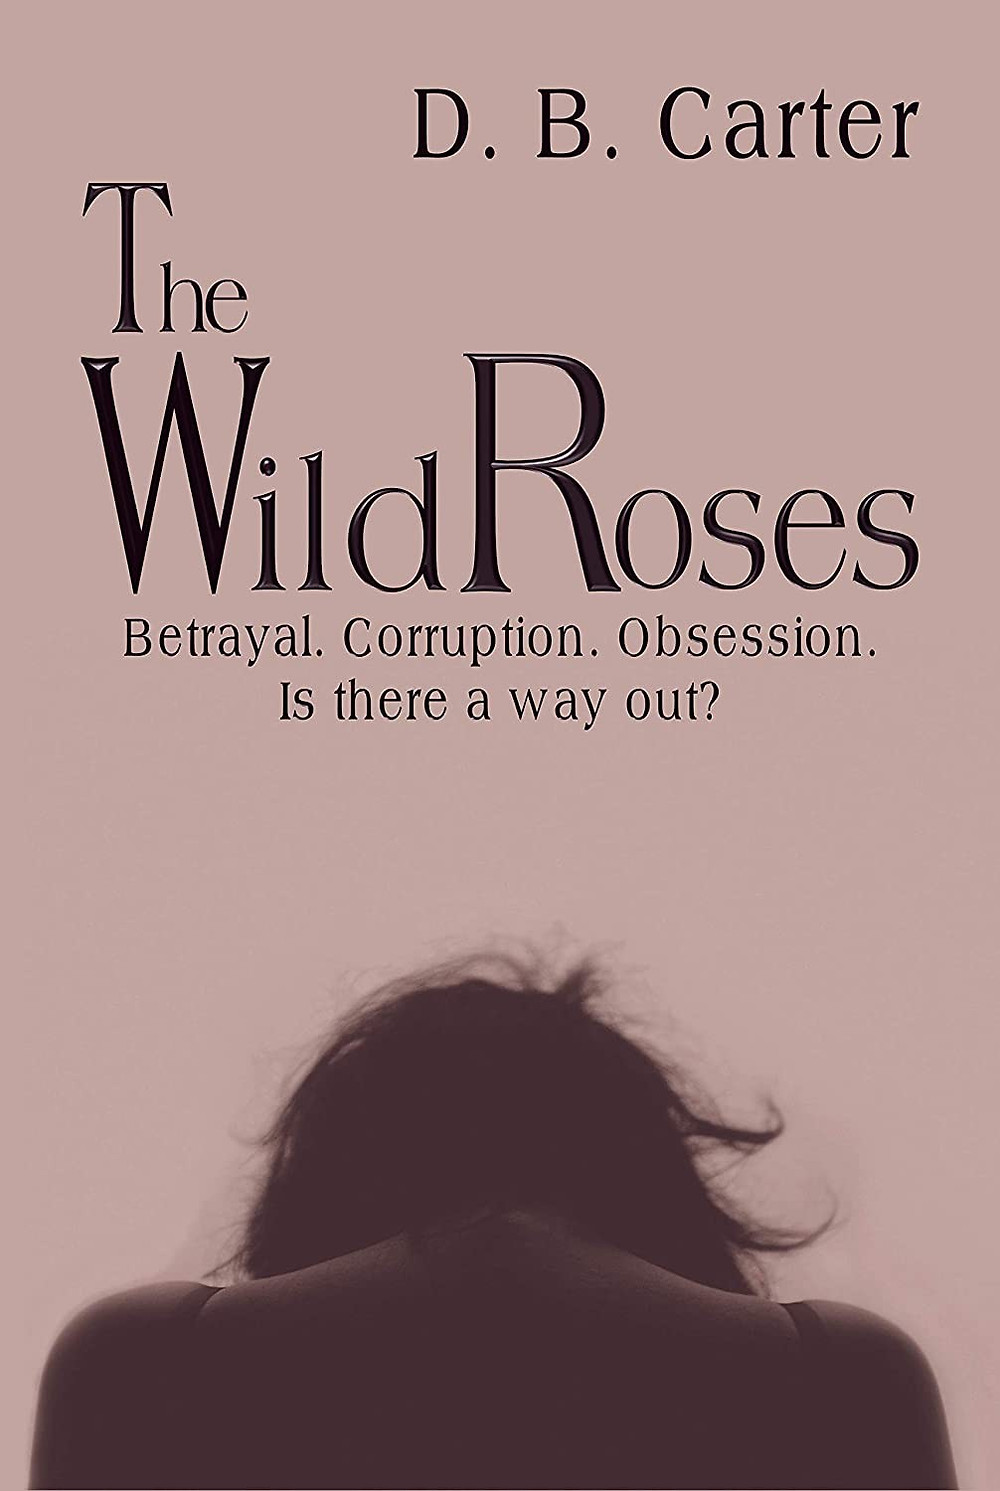 The Wild Roses by D.B. Carter